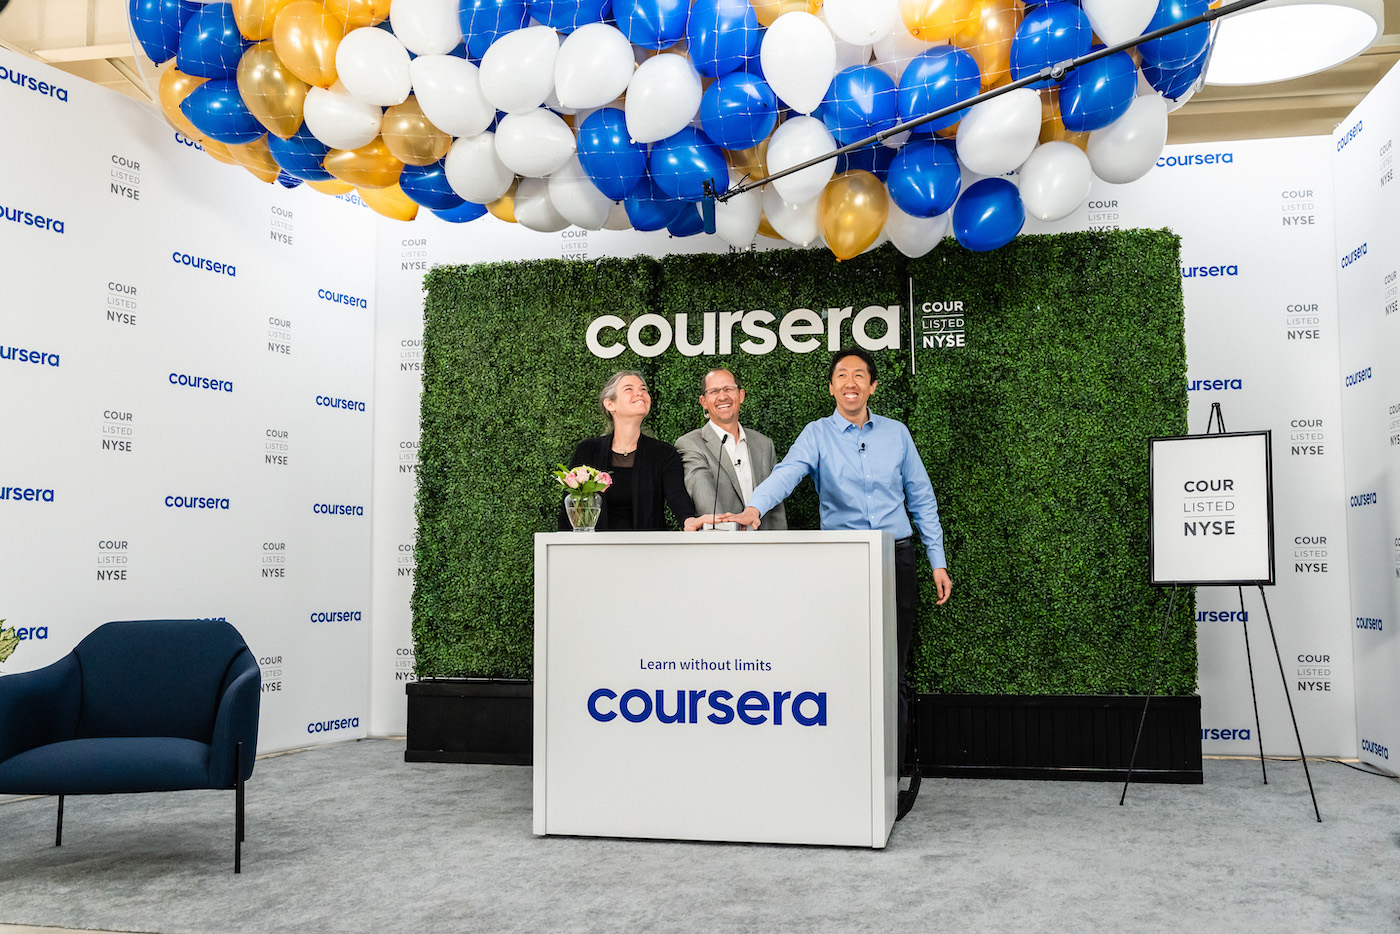 Coursera's IPO Launch